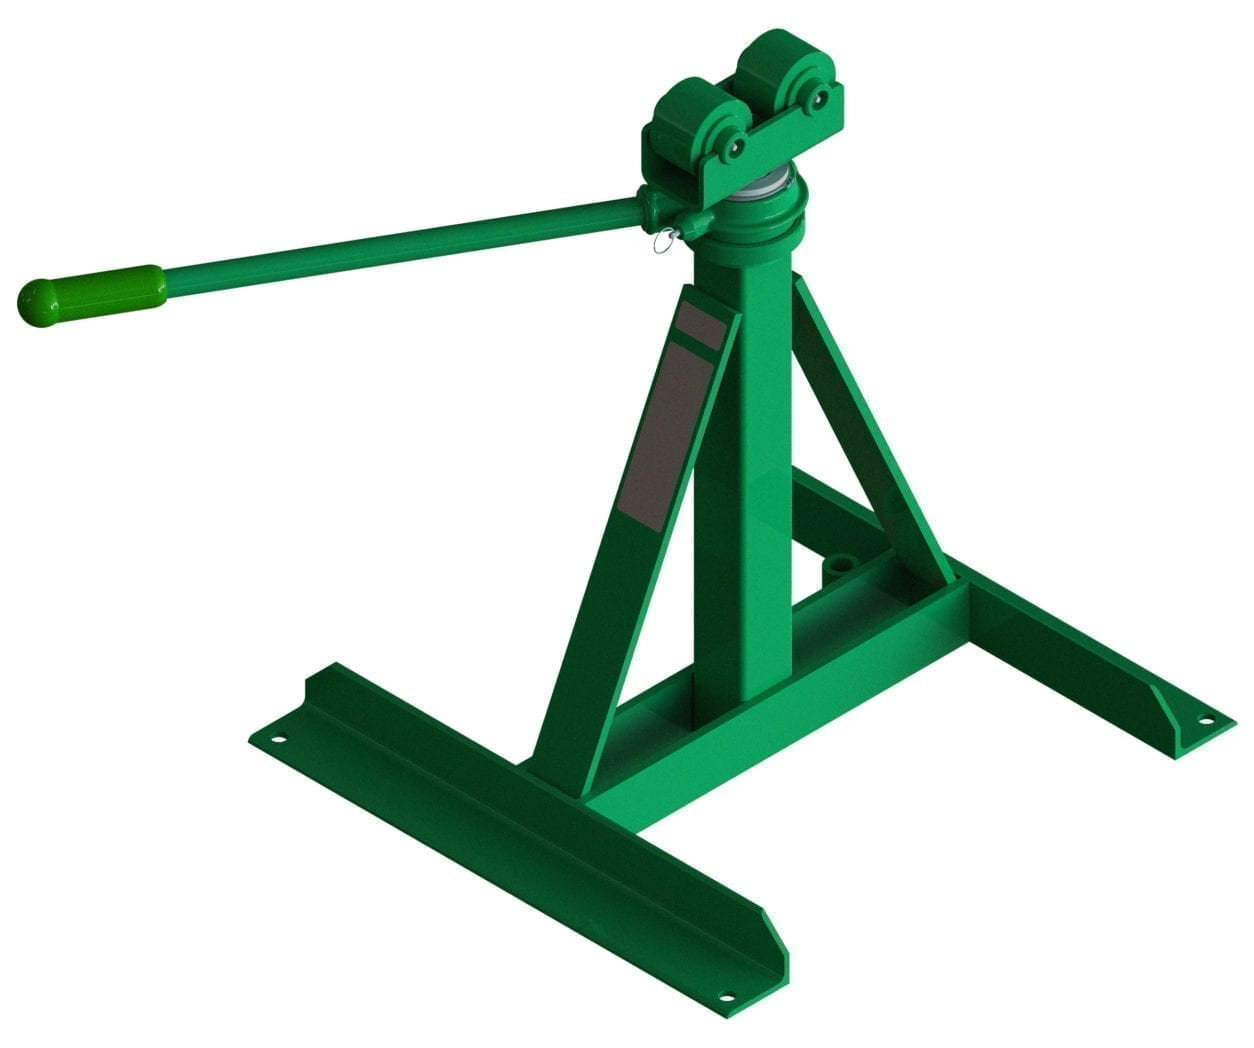 Reel Roller and Stands | Contractors Choice Inc. Tools and Equipment